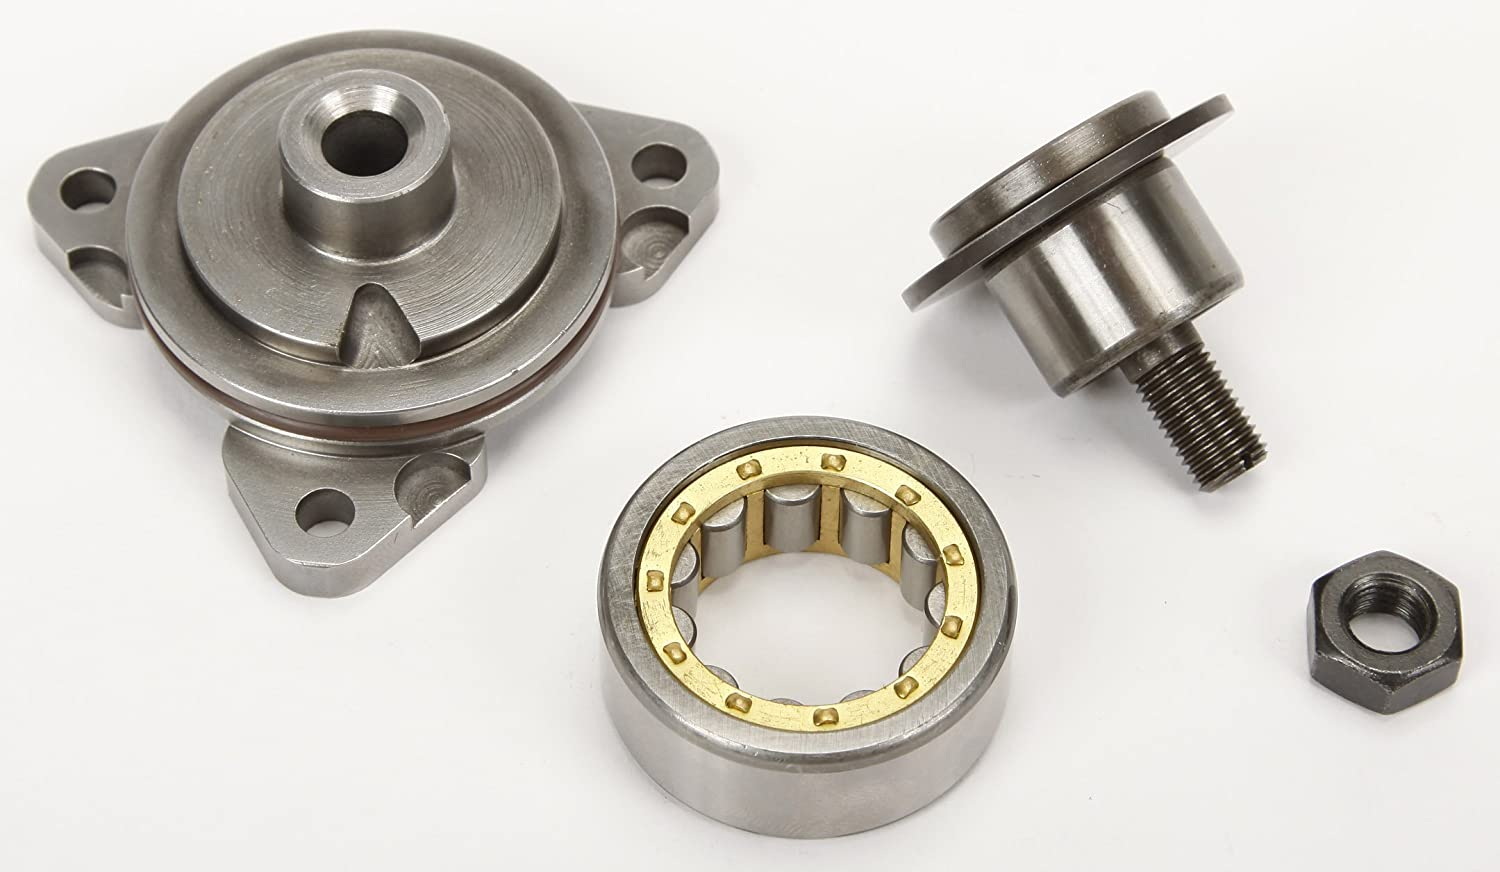 Amazon.com: Porsche 911/996 / Boxster IMS Intermediate Shaft Bearing Repair Permanent FIX Retrofit with Pressurized Oil Feed: Automotive